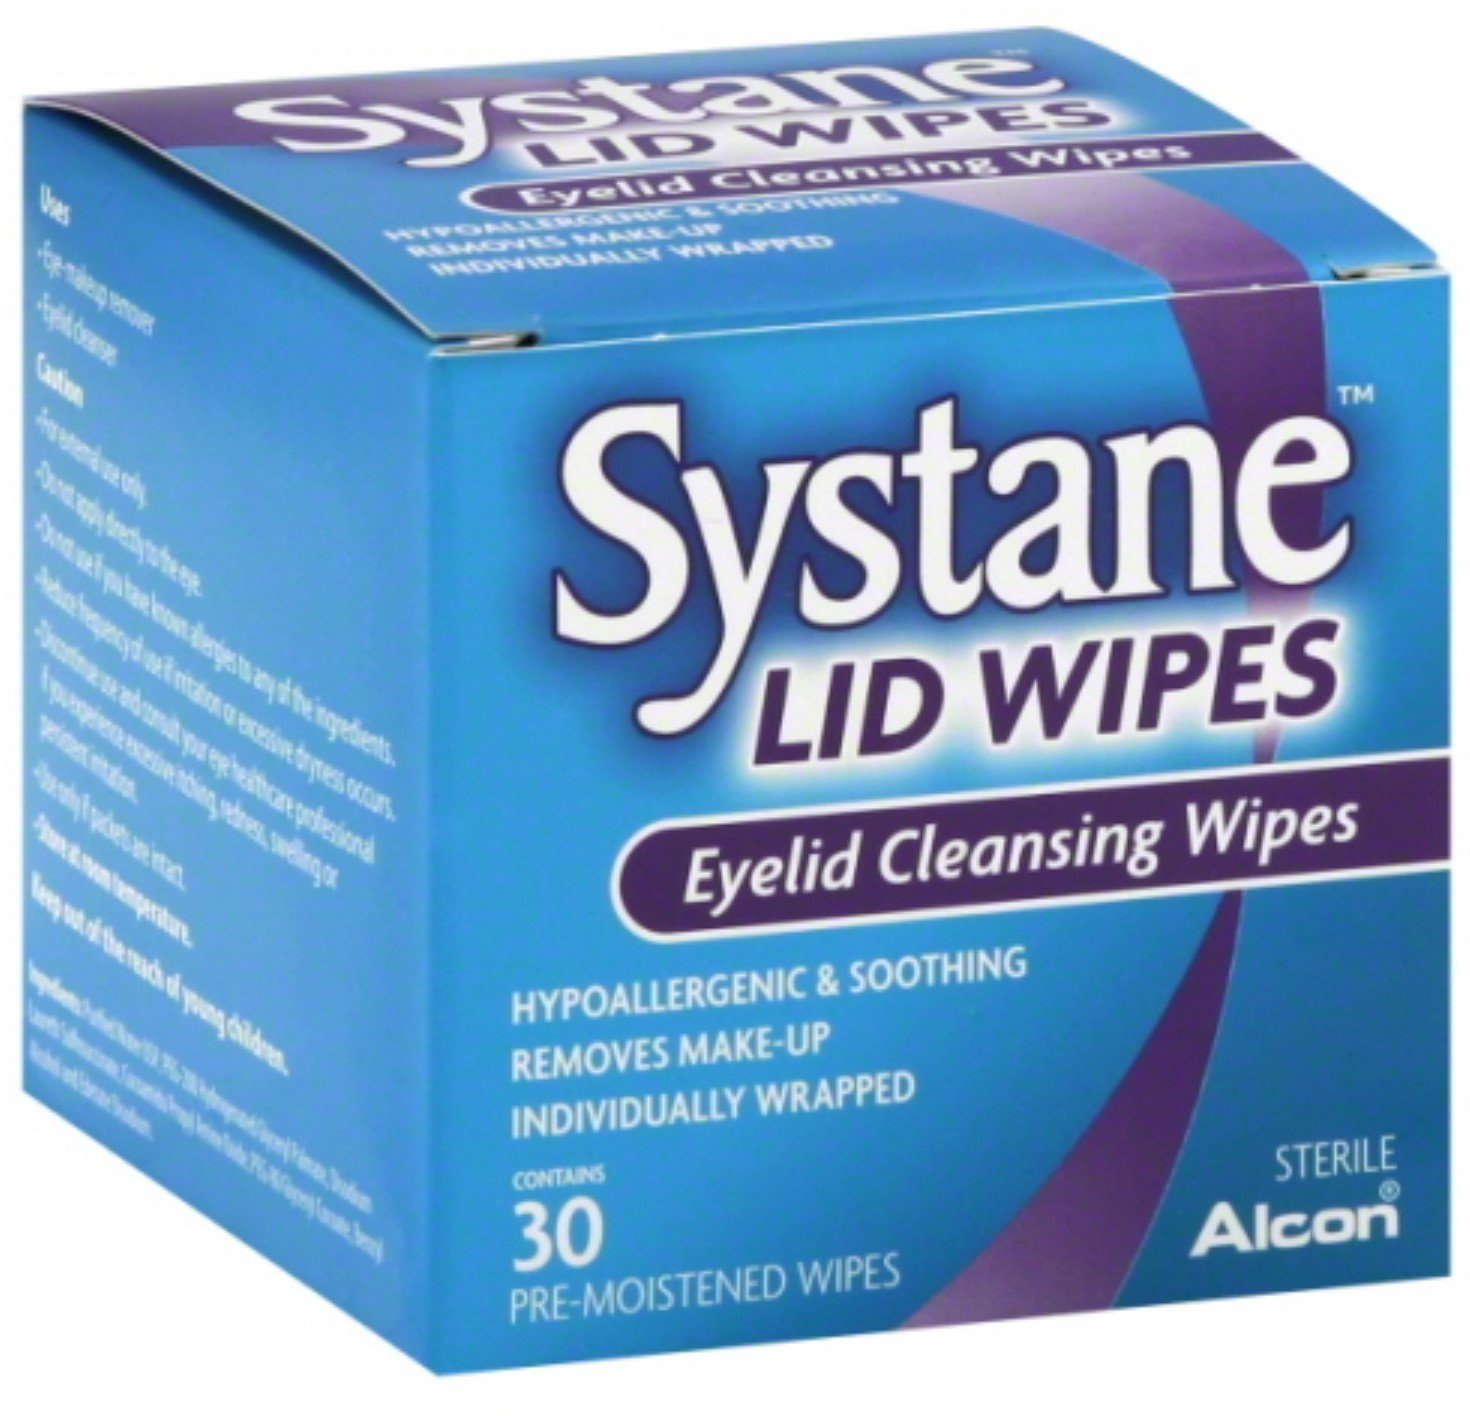 Systane Eyelid Cleansing Wipes, 30 Count (6 Pack)